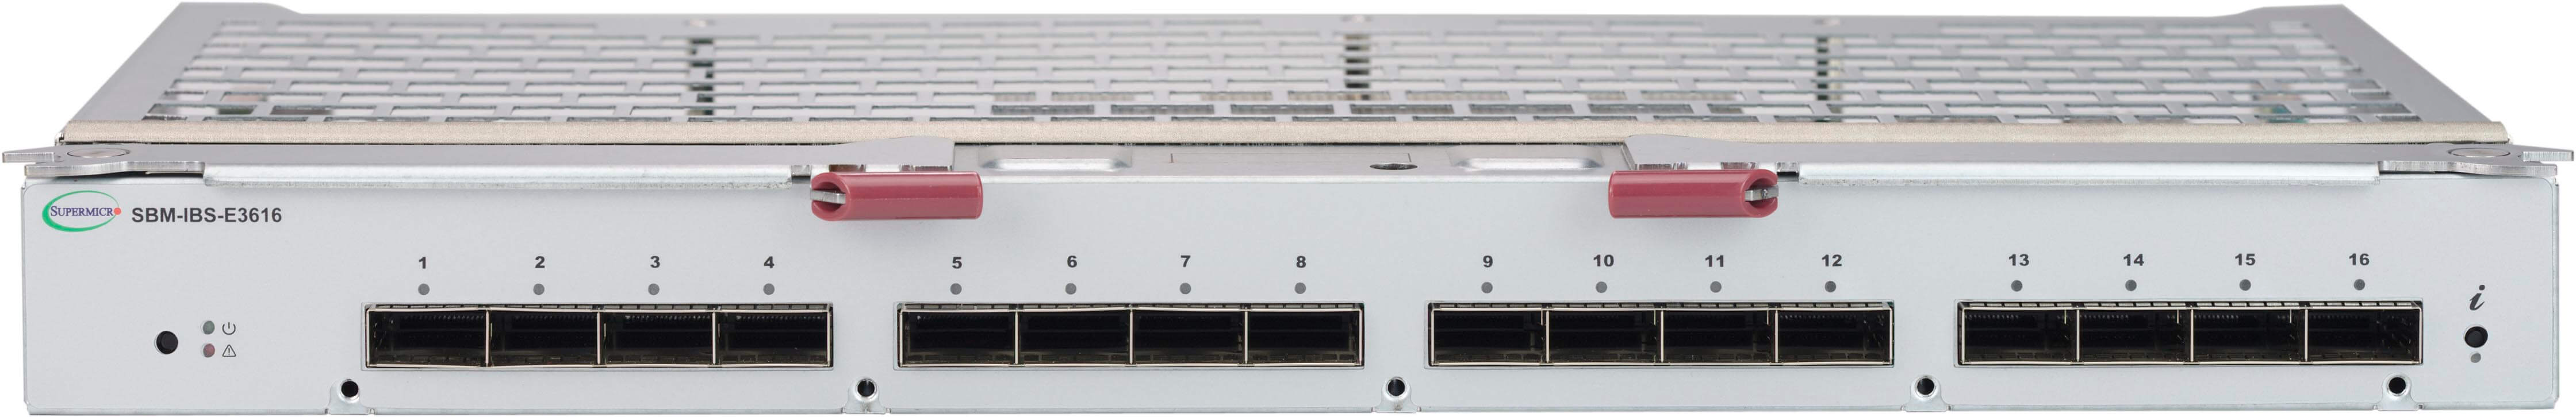 100Gb EDR InfiniBand Switch